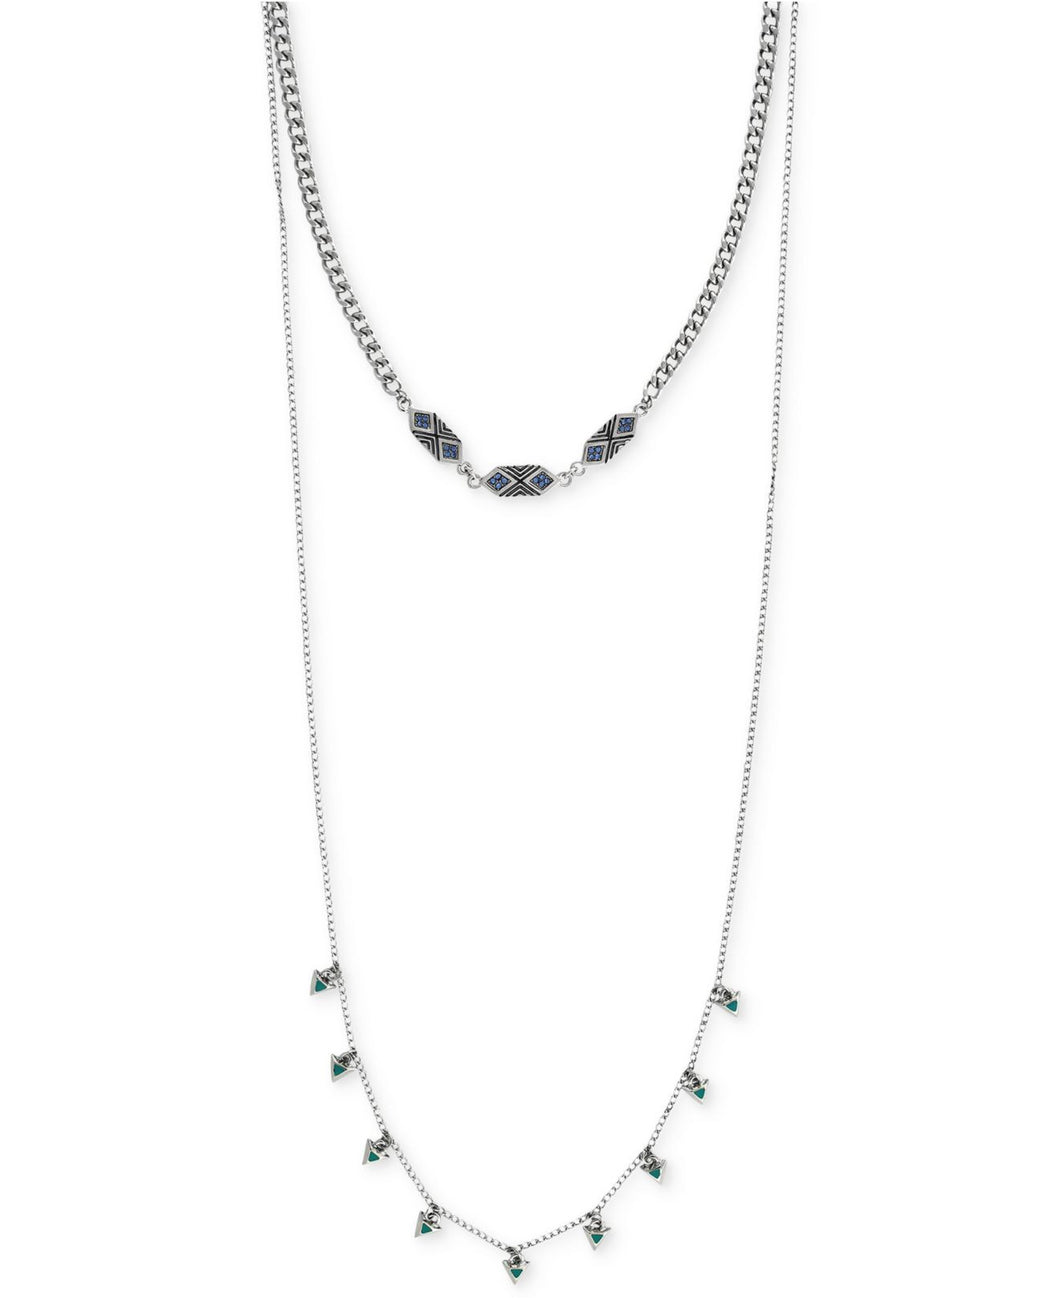 BCBGeneration Women's Metallic Silver-tone Geometric Accent High-low Necklace